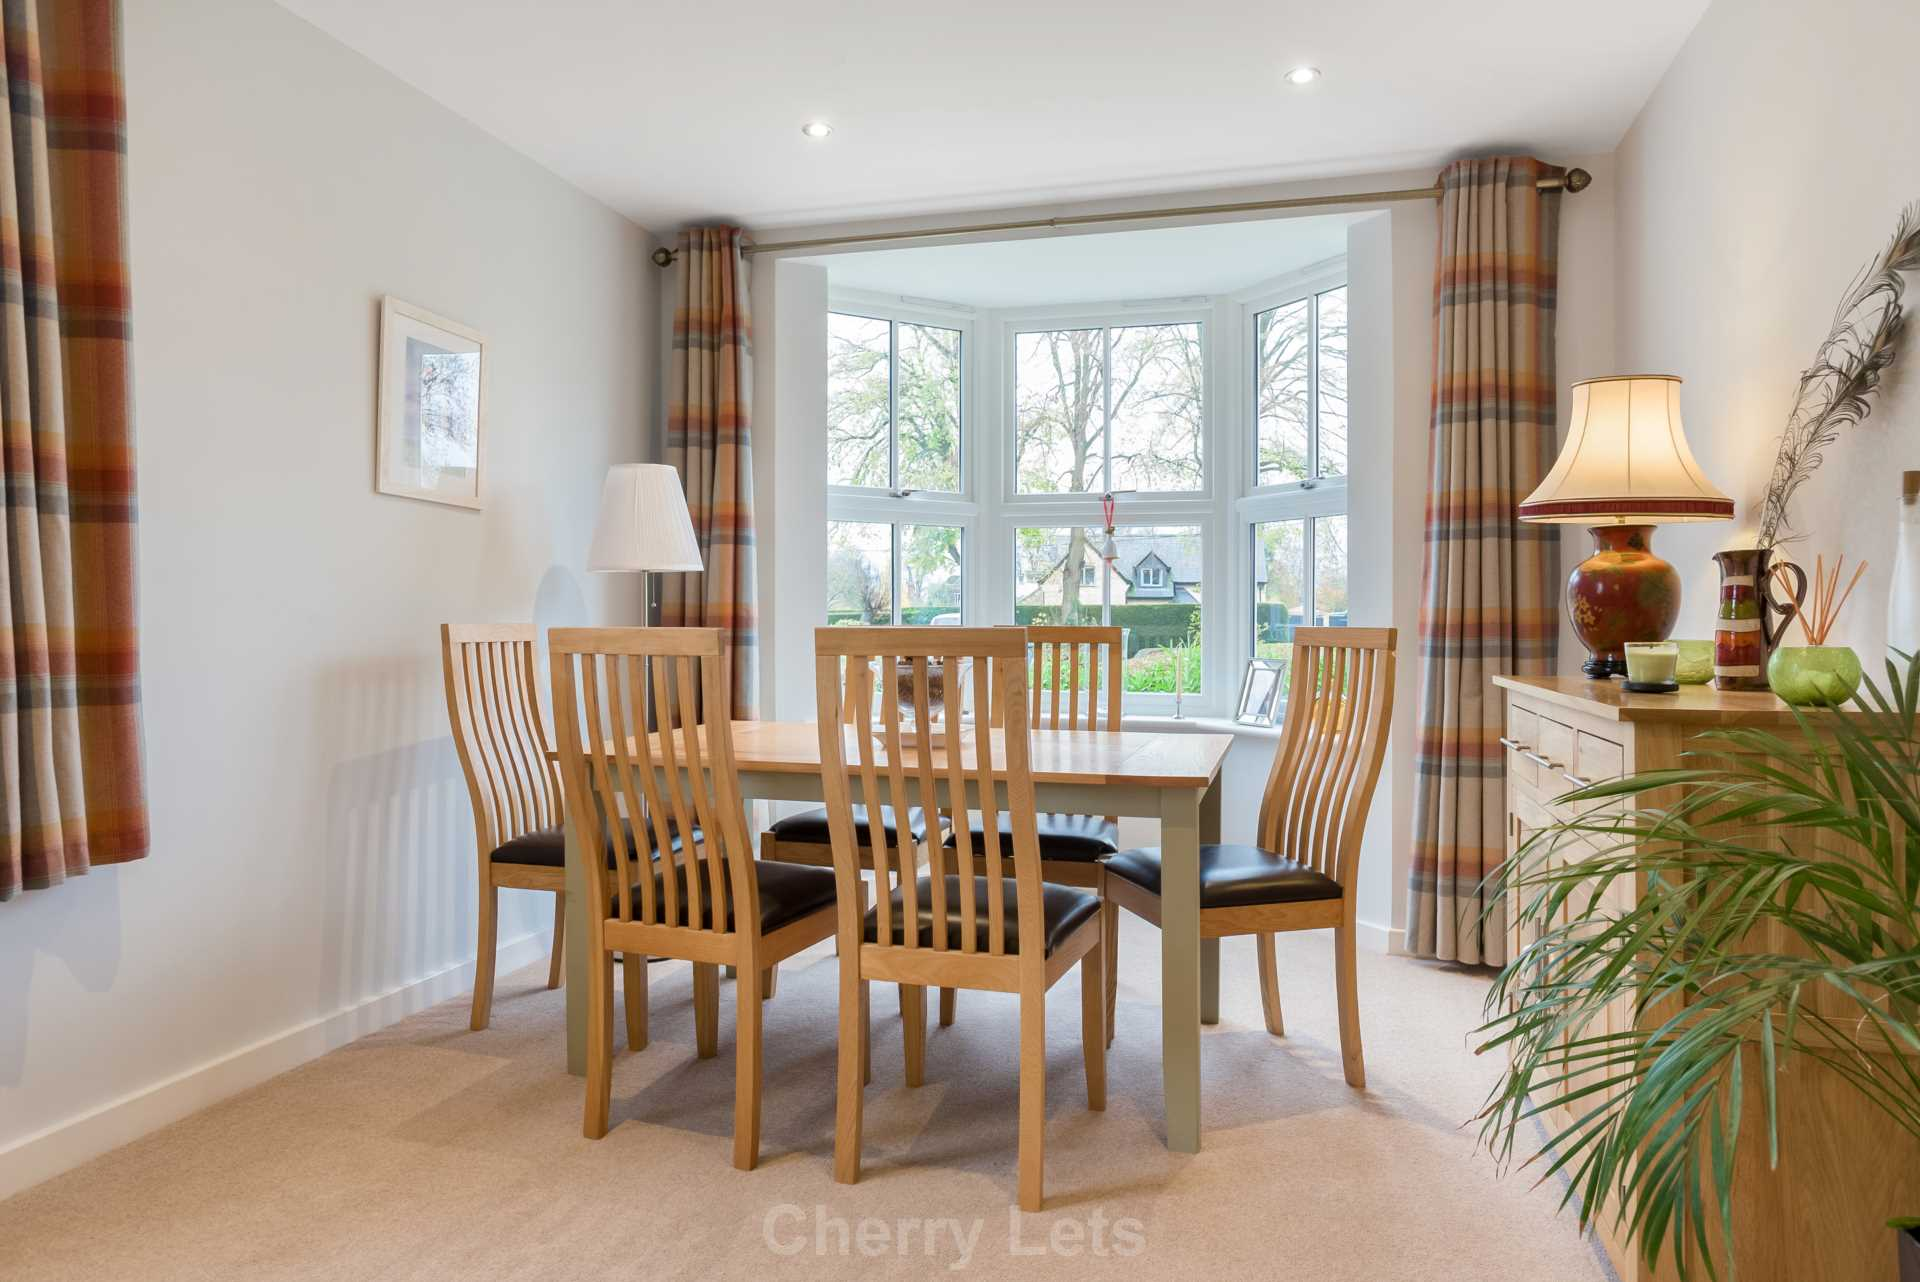 2 bed apartment to rent in Astrop Grange, Kings Sutton, OX17 4